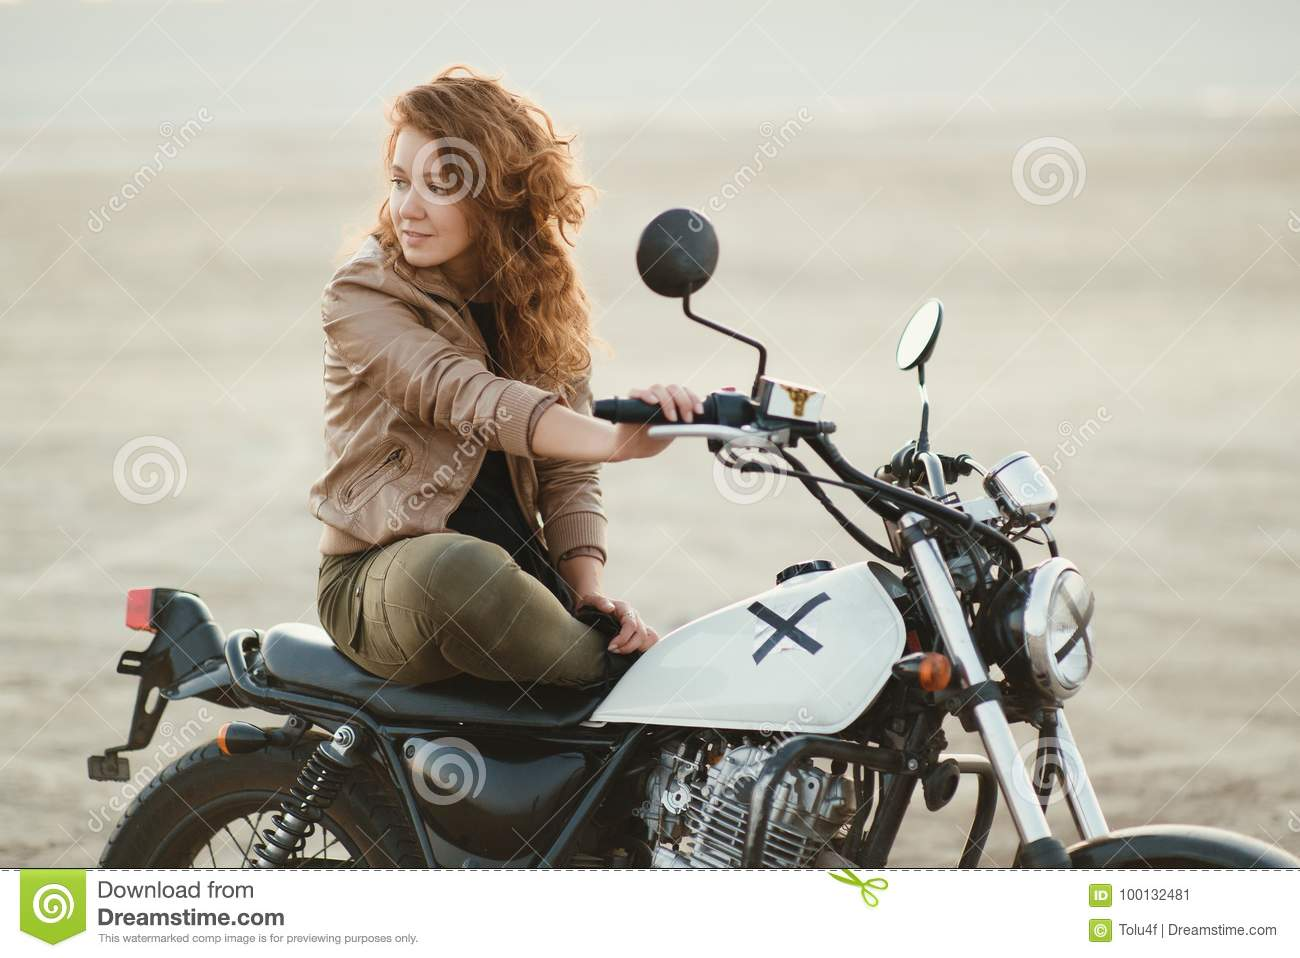 young beautiful woman sitting on her old cafe racer motorcycle in desert at sunset or sunrise